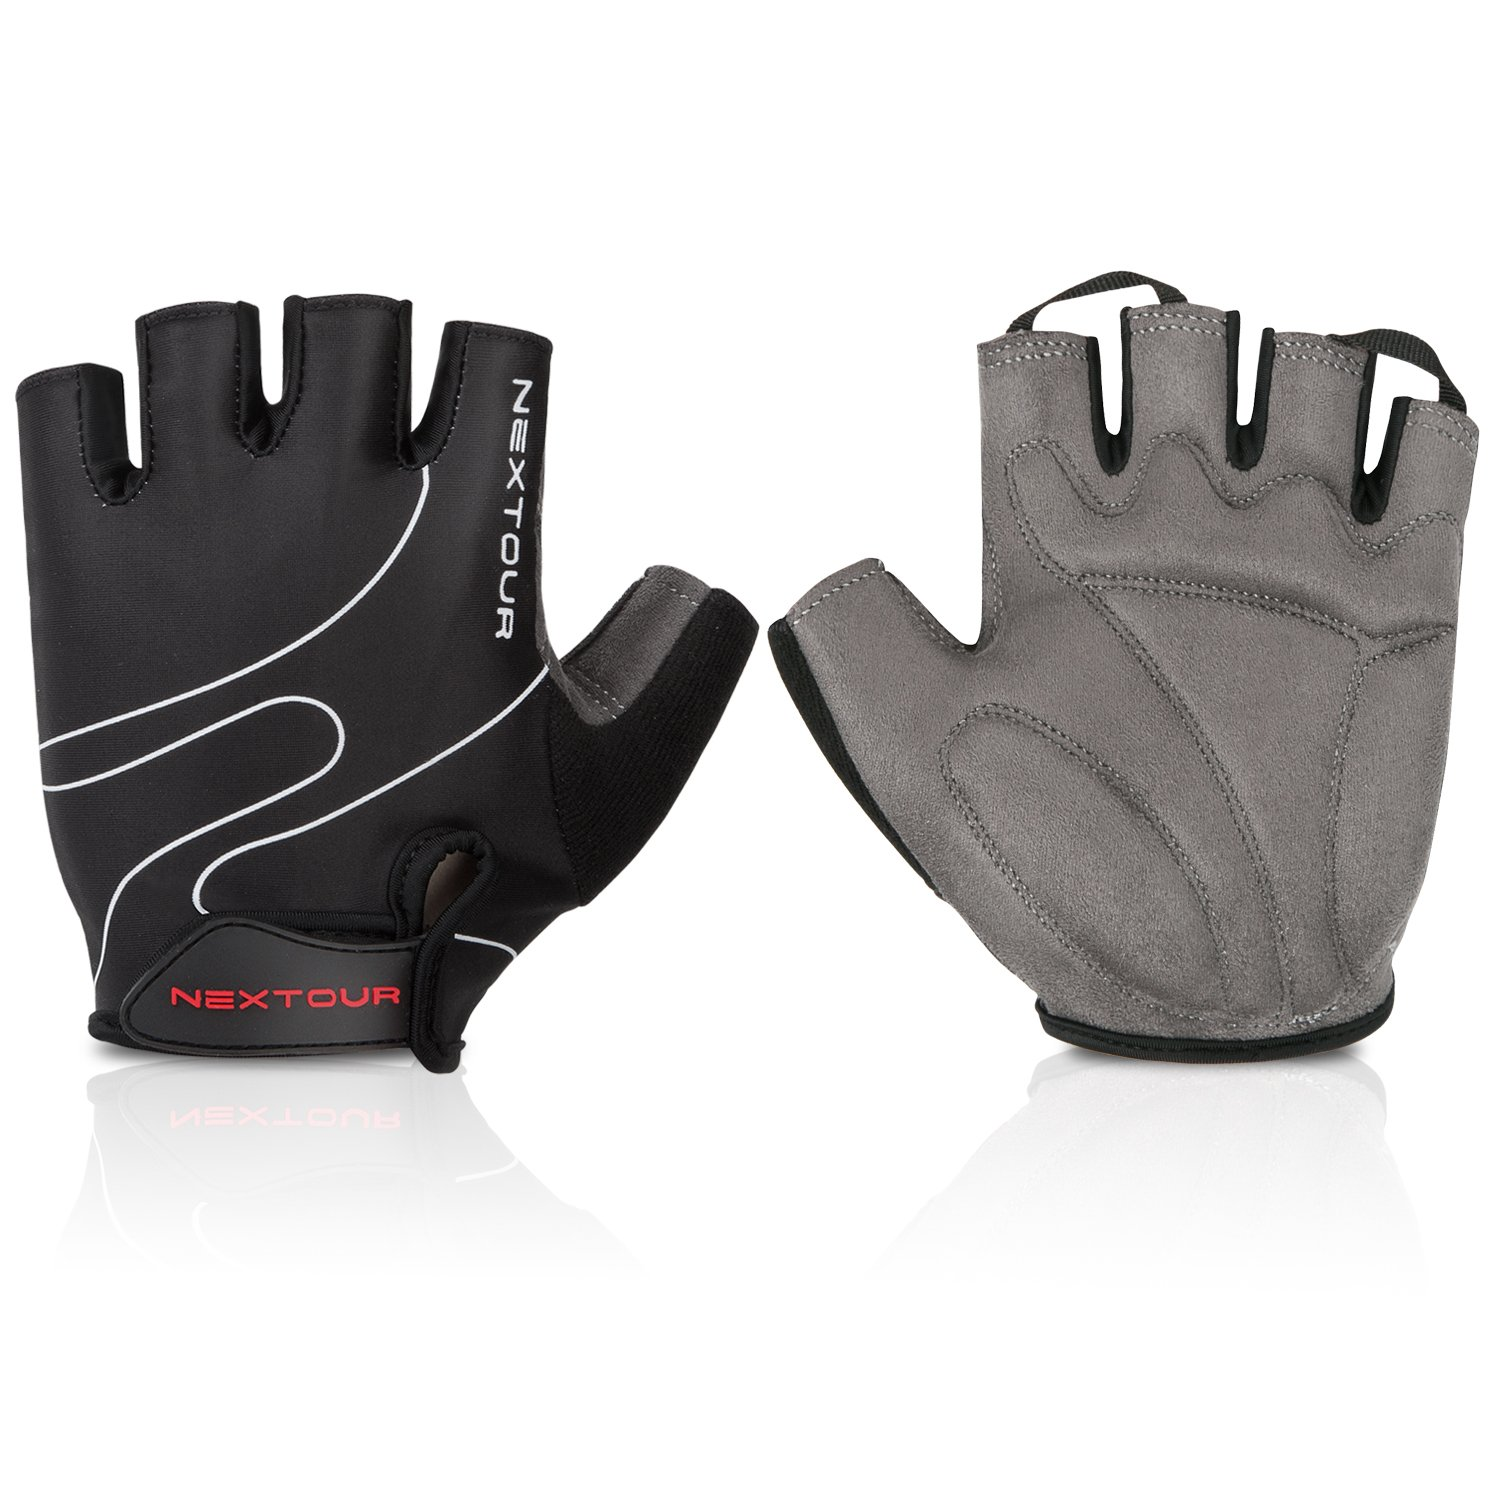 Mens gloves summer - Best Sellers In Men S Cycling Gloves